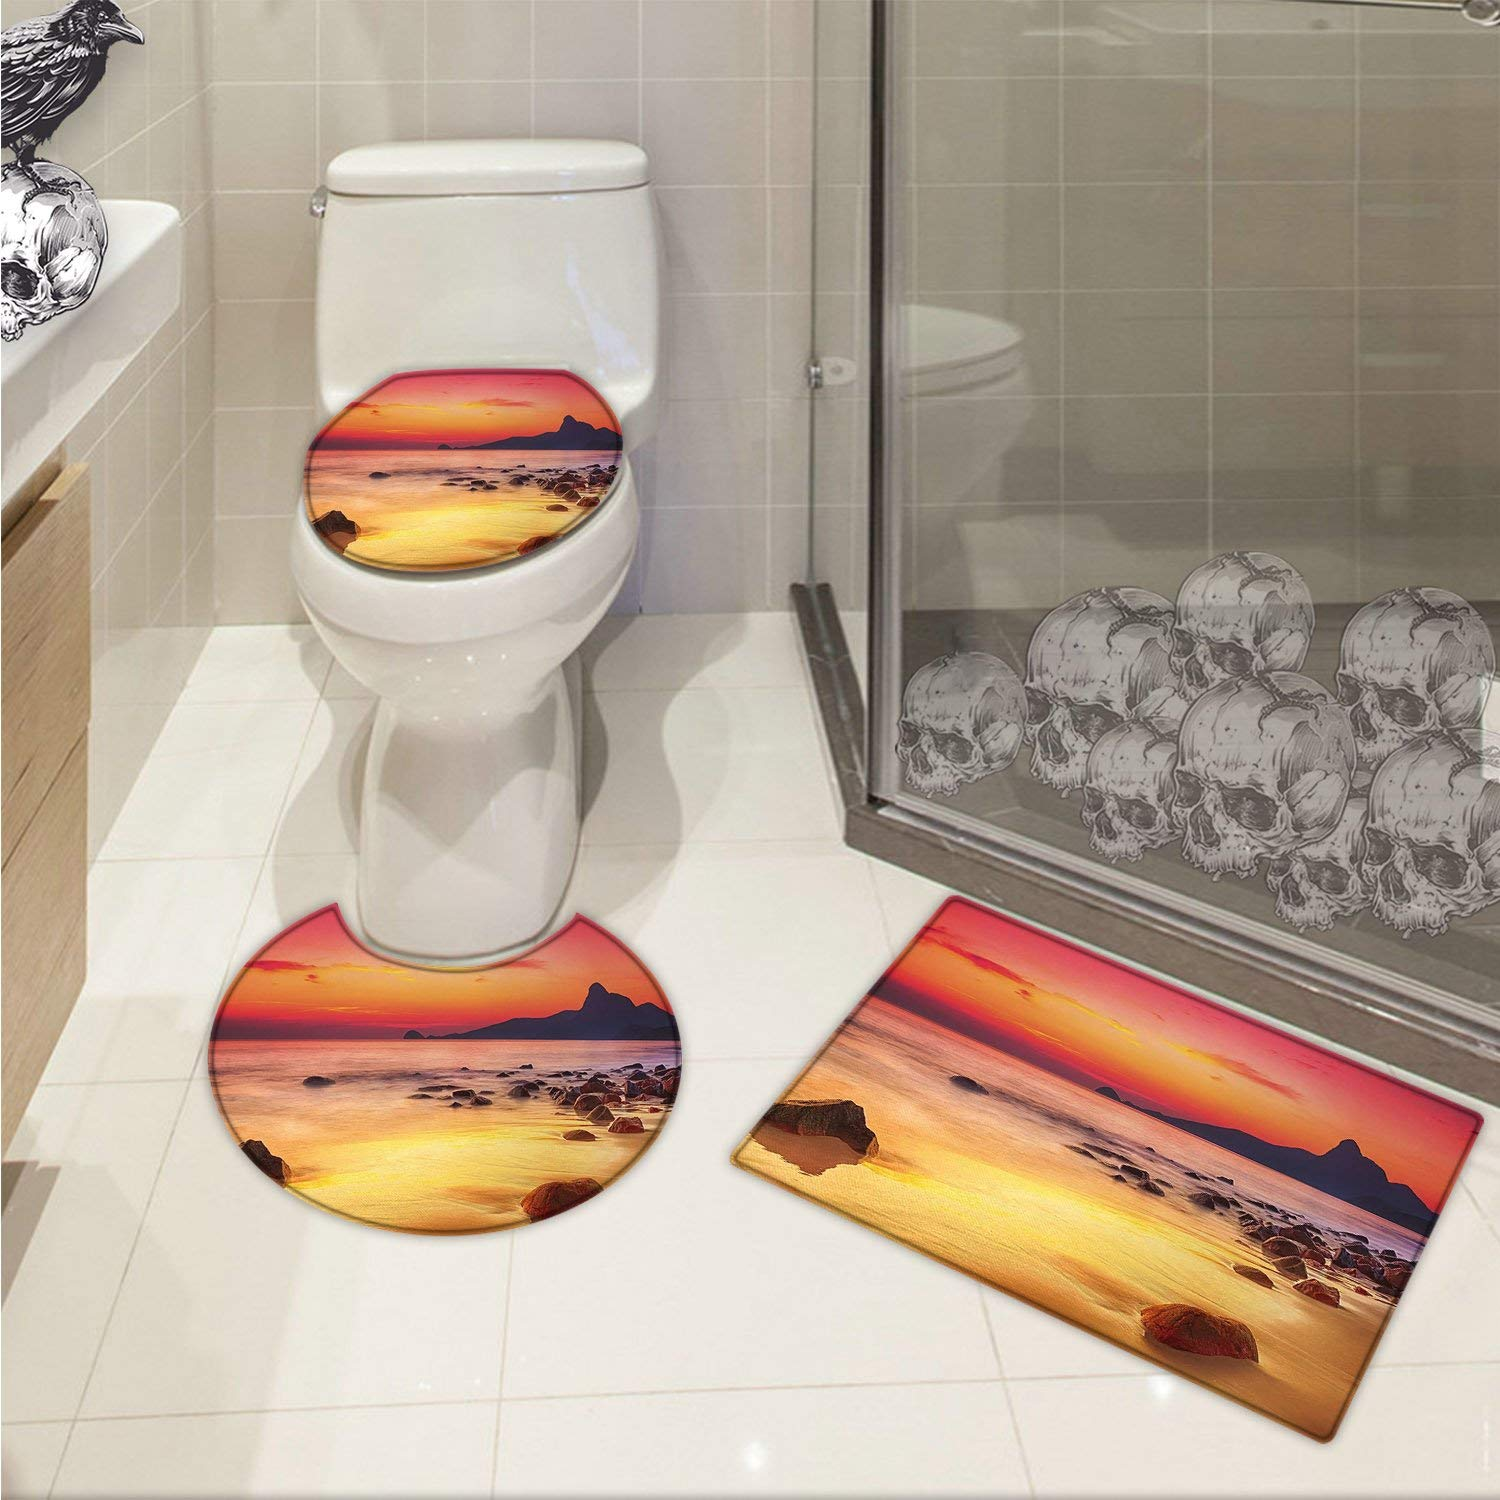 Ocean 3 Piece Toilet lid cover mat set Digital Photo of Mystical Sunrise over the Sea with Stones and Cliffs Idyllic Spot Printed Orange Yellow